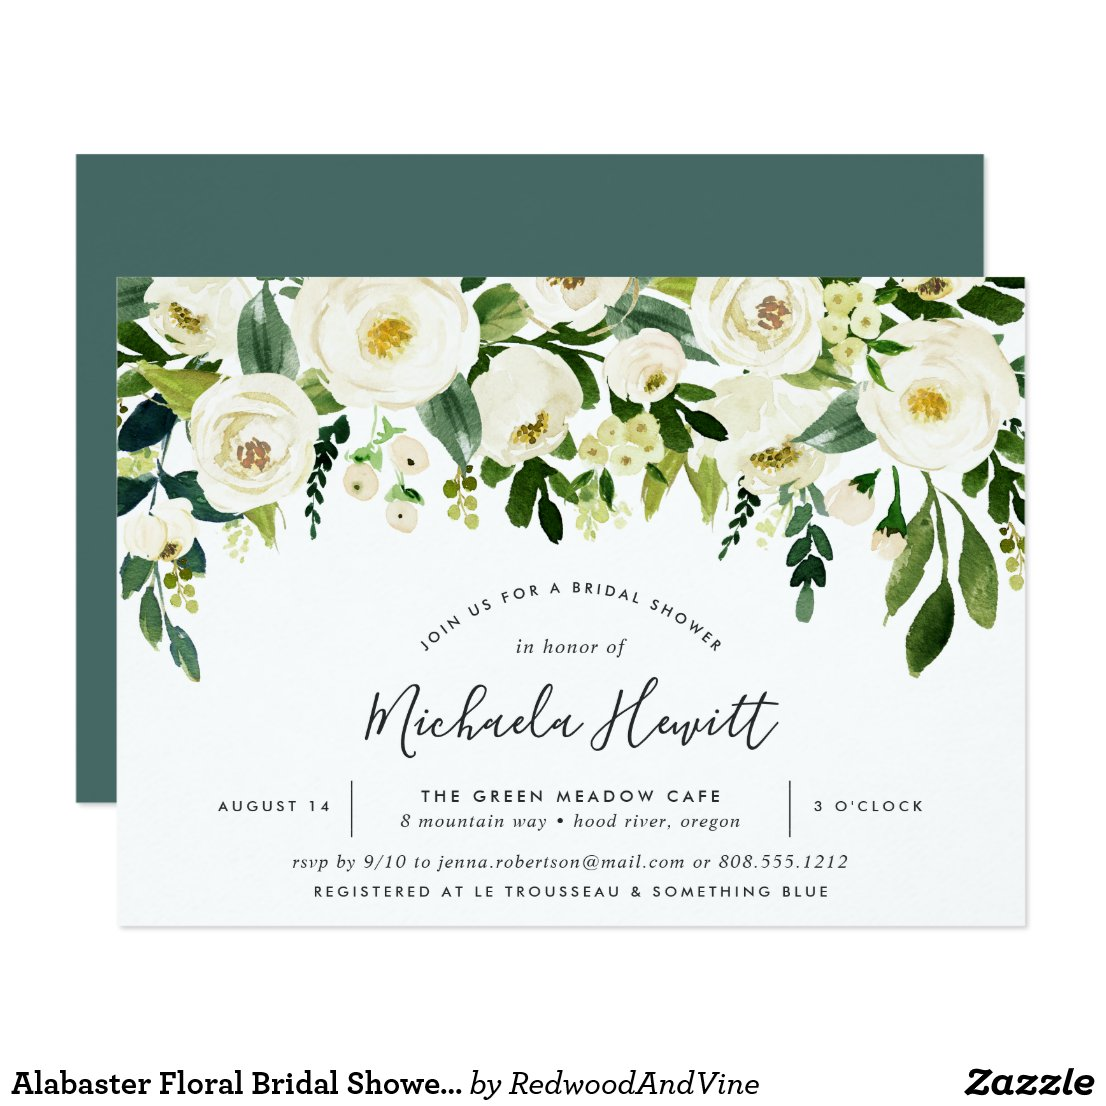 Alabaster Floral Bridal Shower Invitation